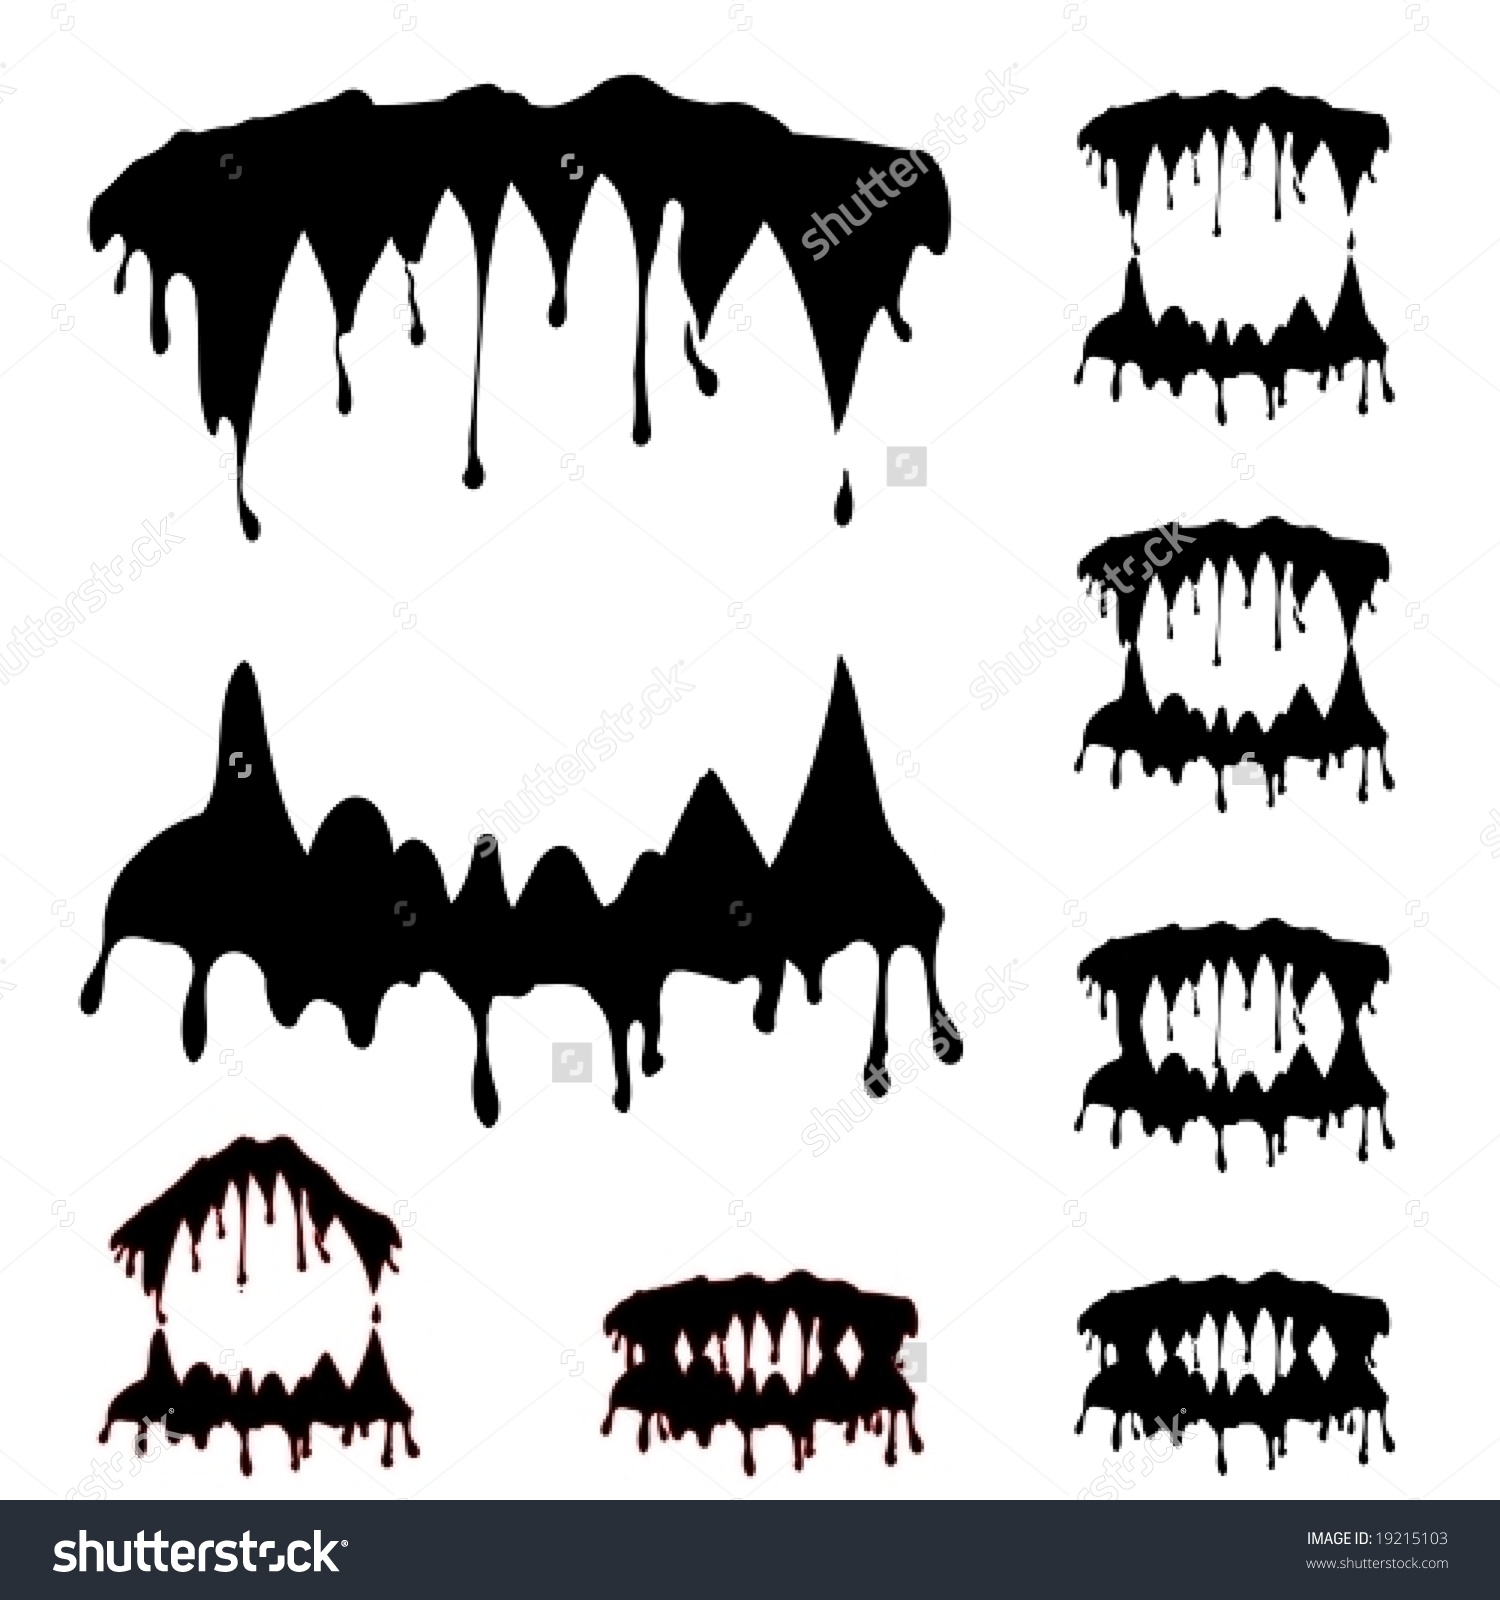 Beast Jaw Silhouettes Collection Vector Illustration Stock Vector.